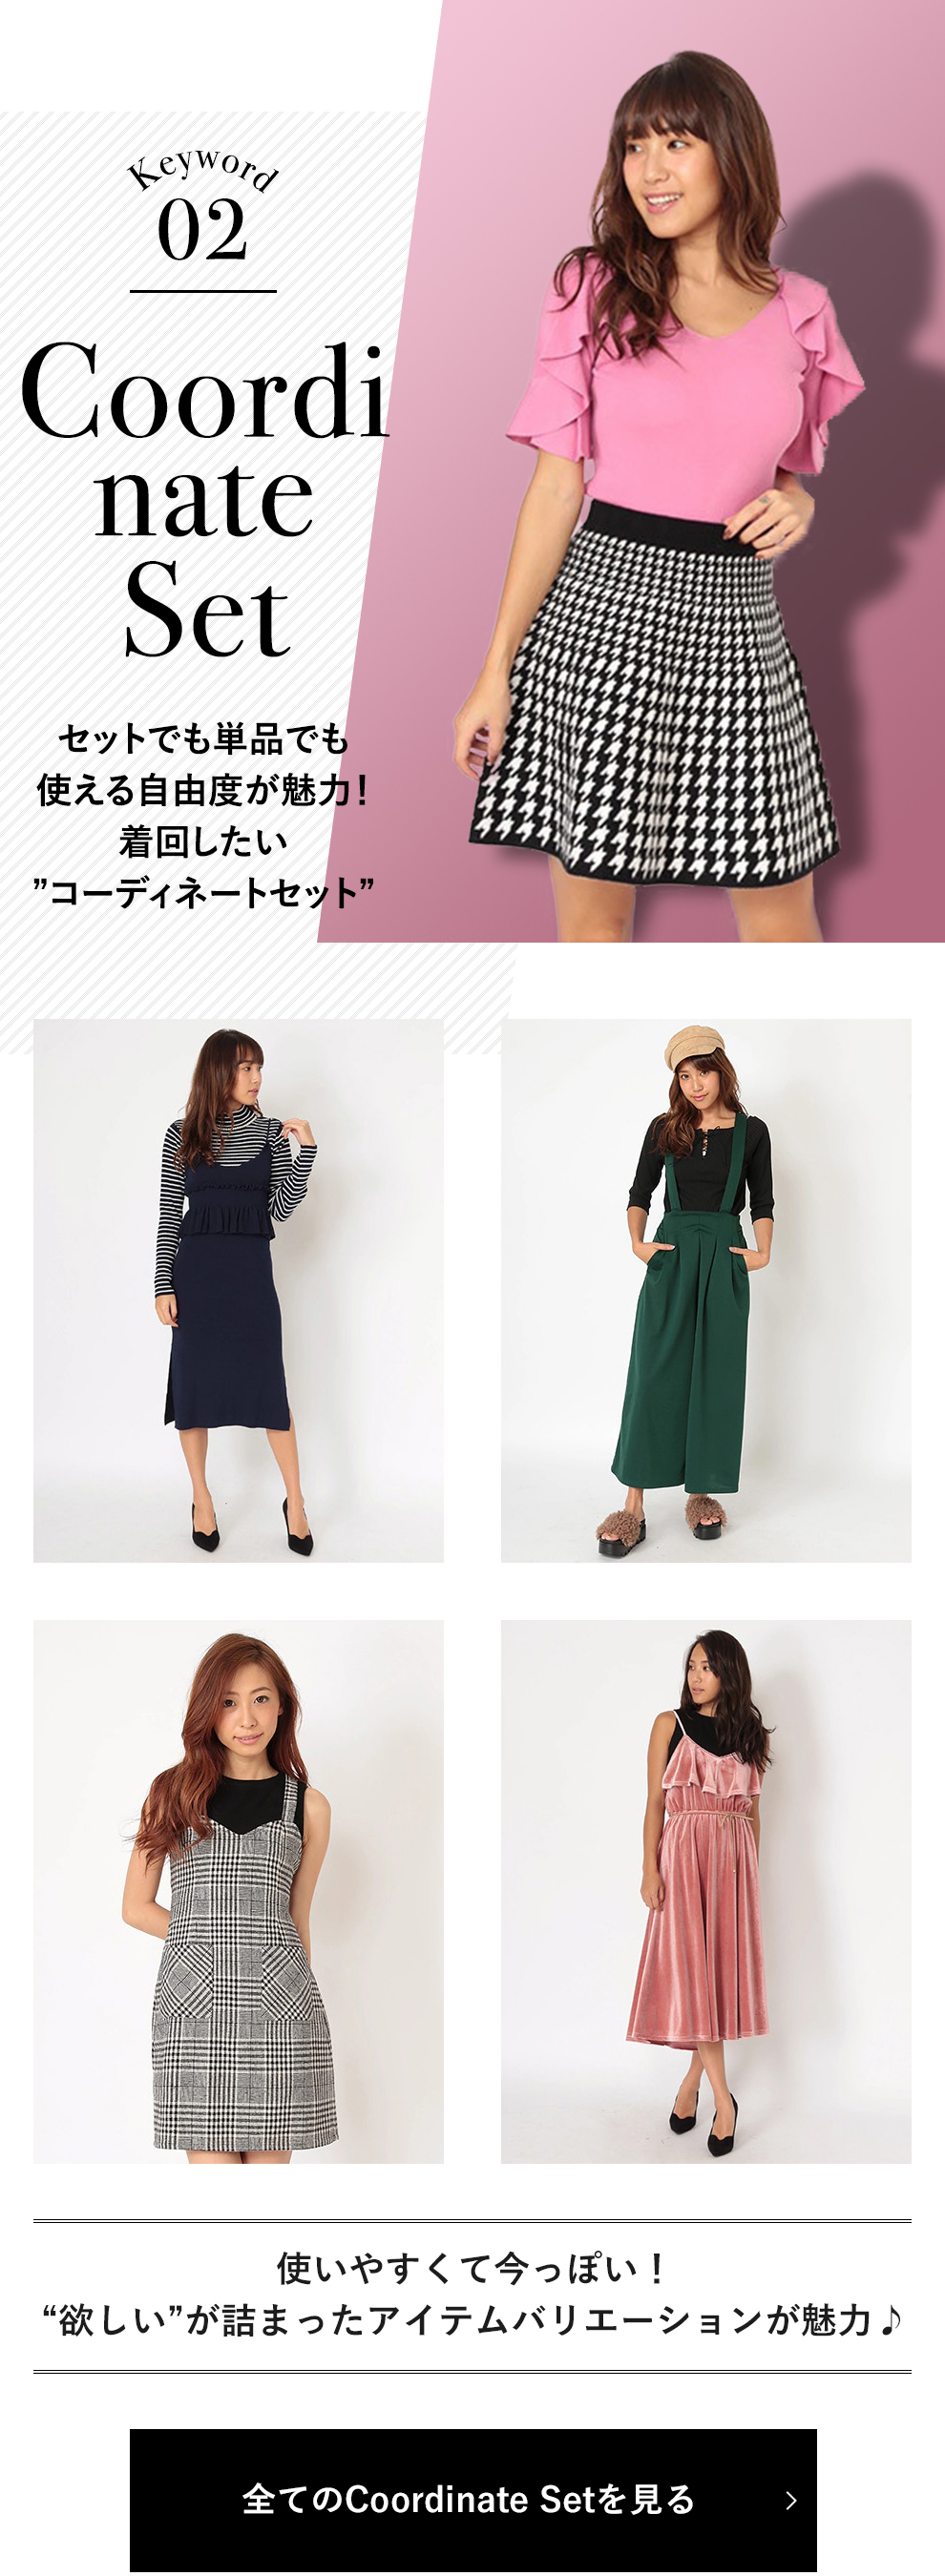 Coordinate Set セットでも単品でも使える自由度が魅力!着まわしたい「コーディネートセット」